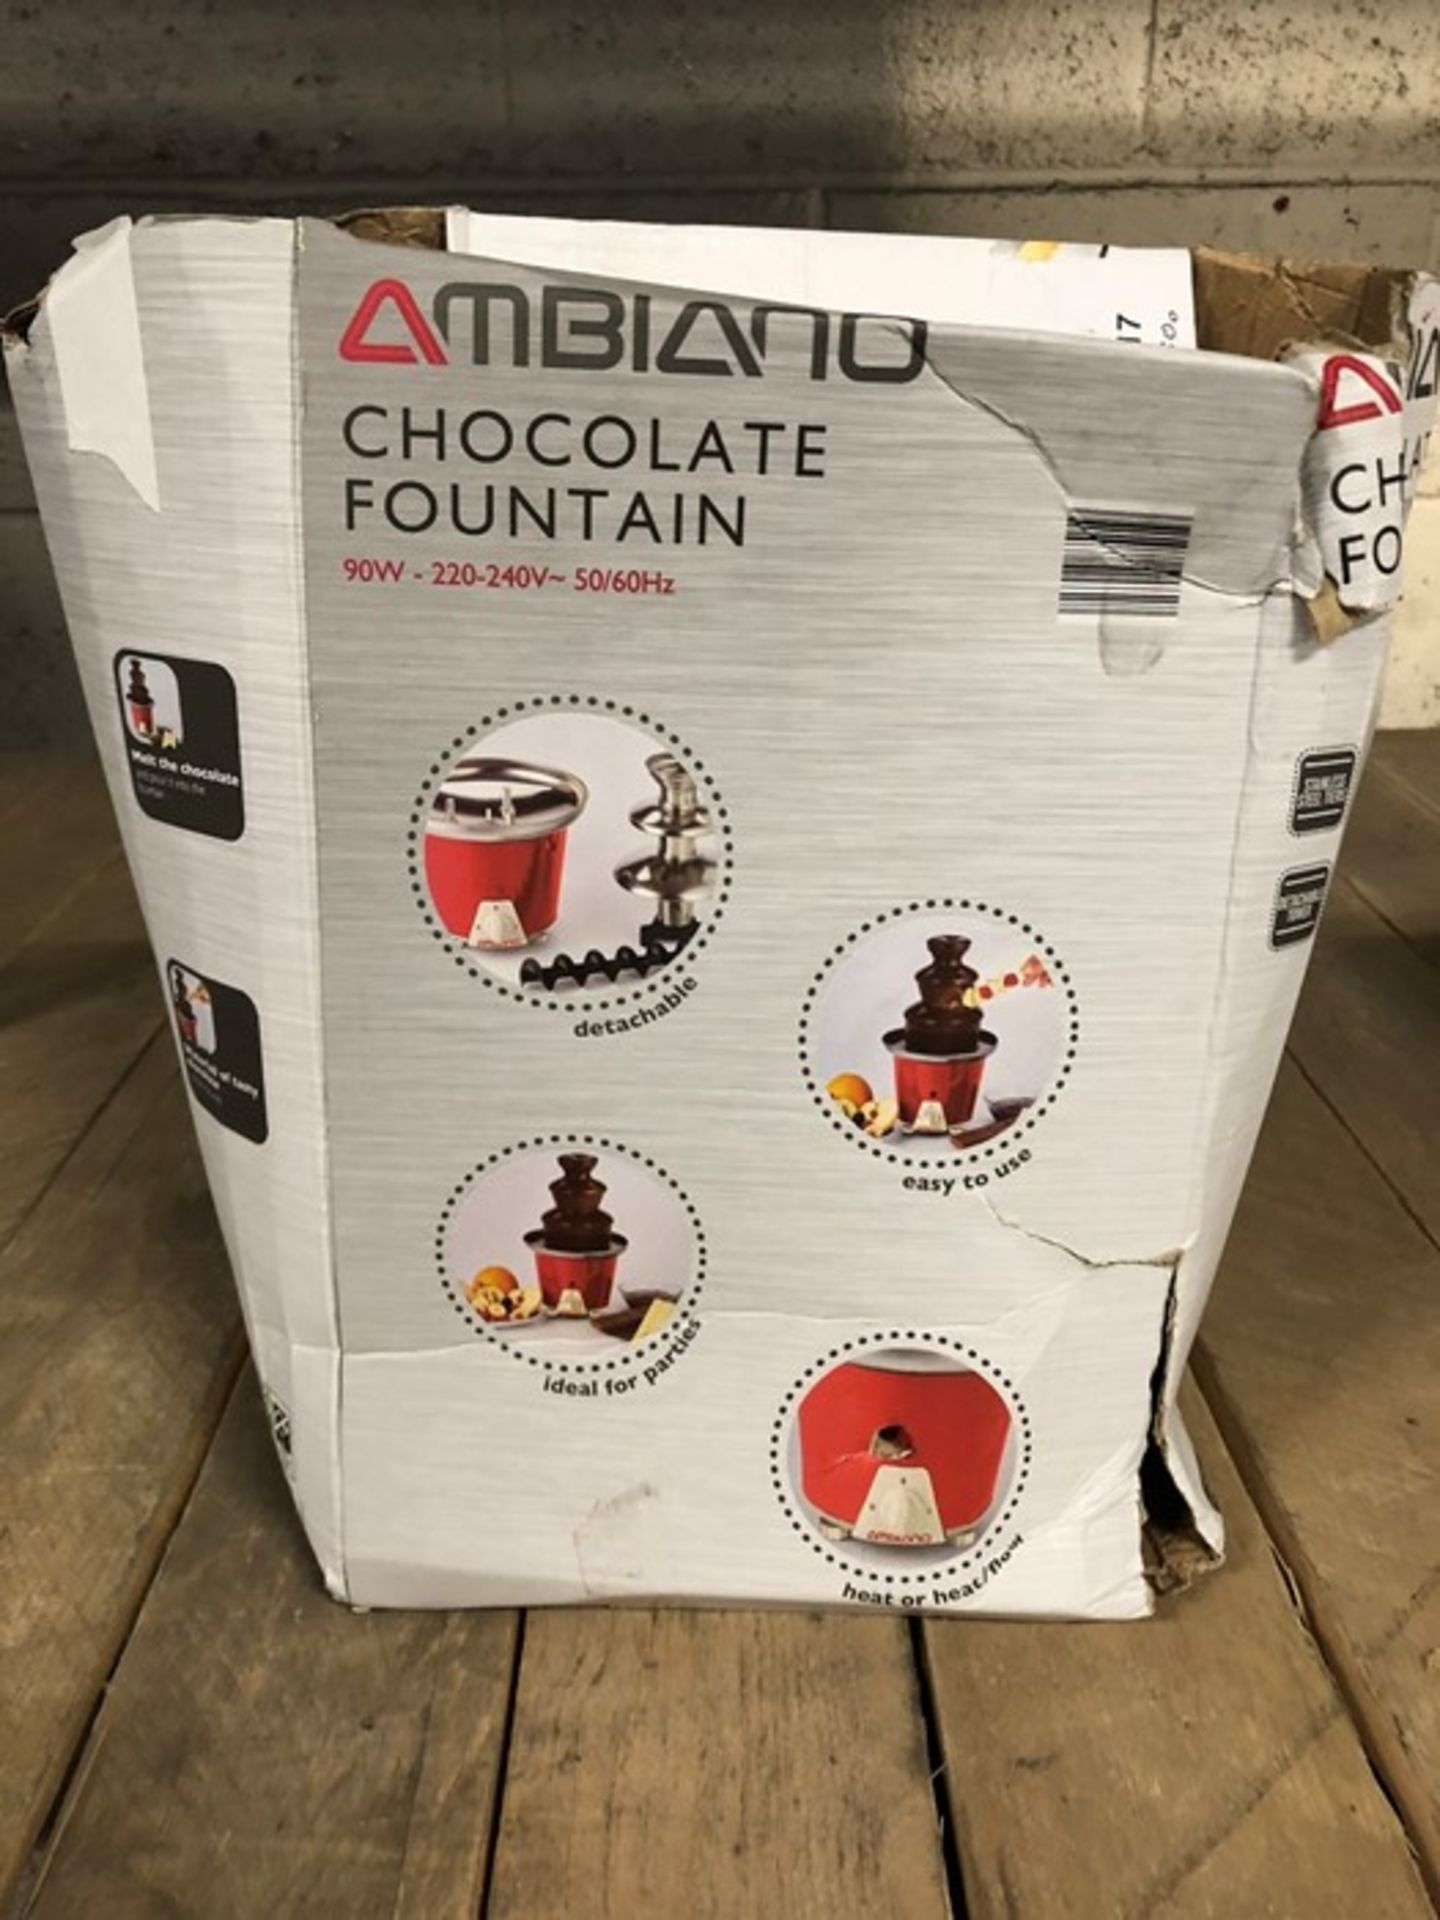 Lot 14 - 1 BOXED AMBIANO CHOCOLATE FOUNTAIN (VIEWING HIGHLY RECOMMENDED)